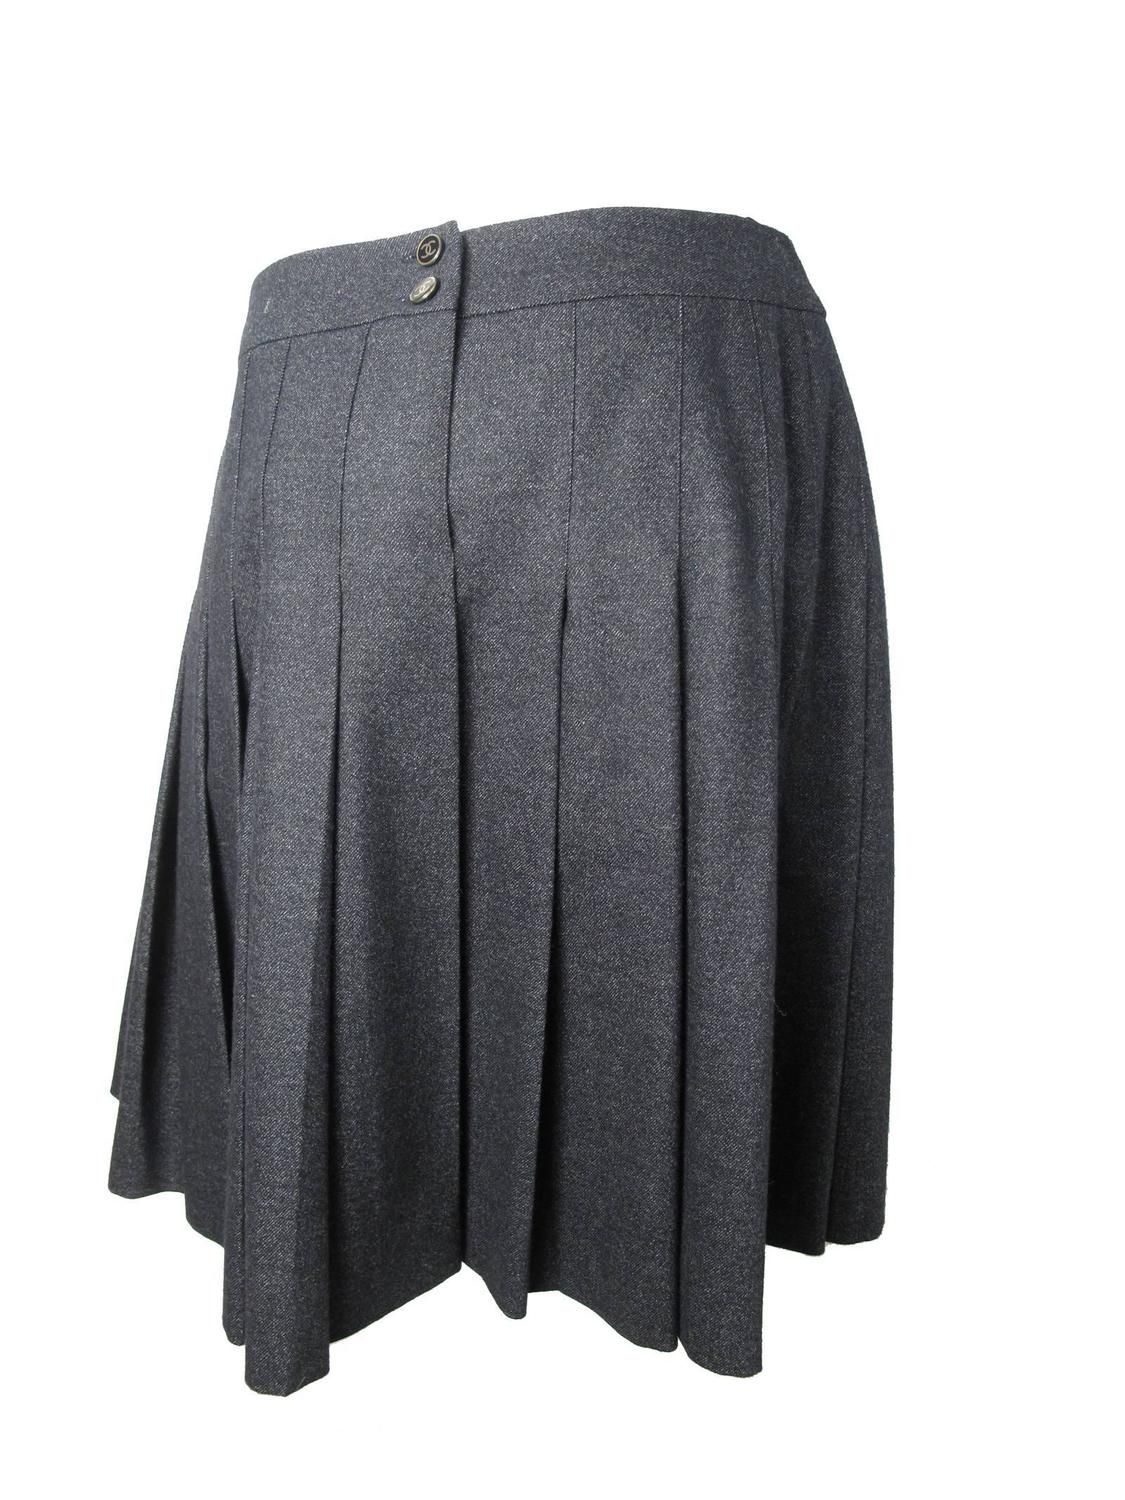 4794ee1a68 Chanel Charcoal Wool Pleated Skirt | From a collection of rare vintage  skirts at https: